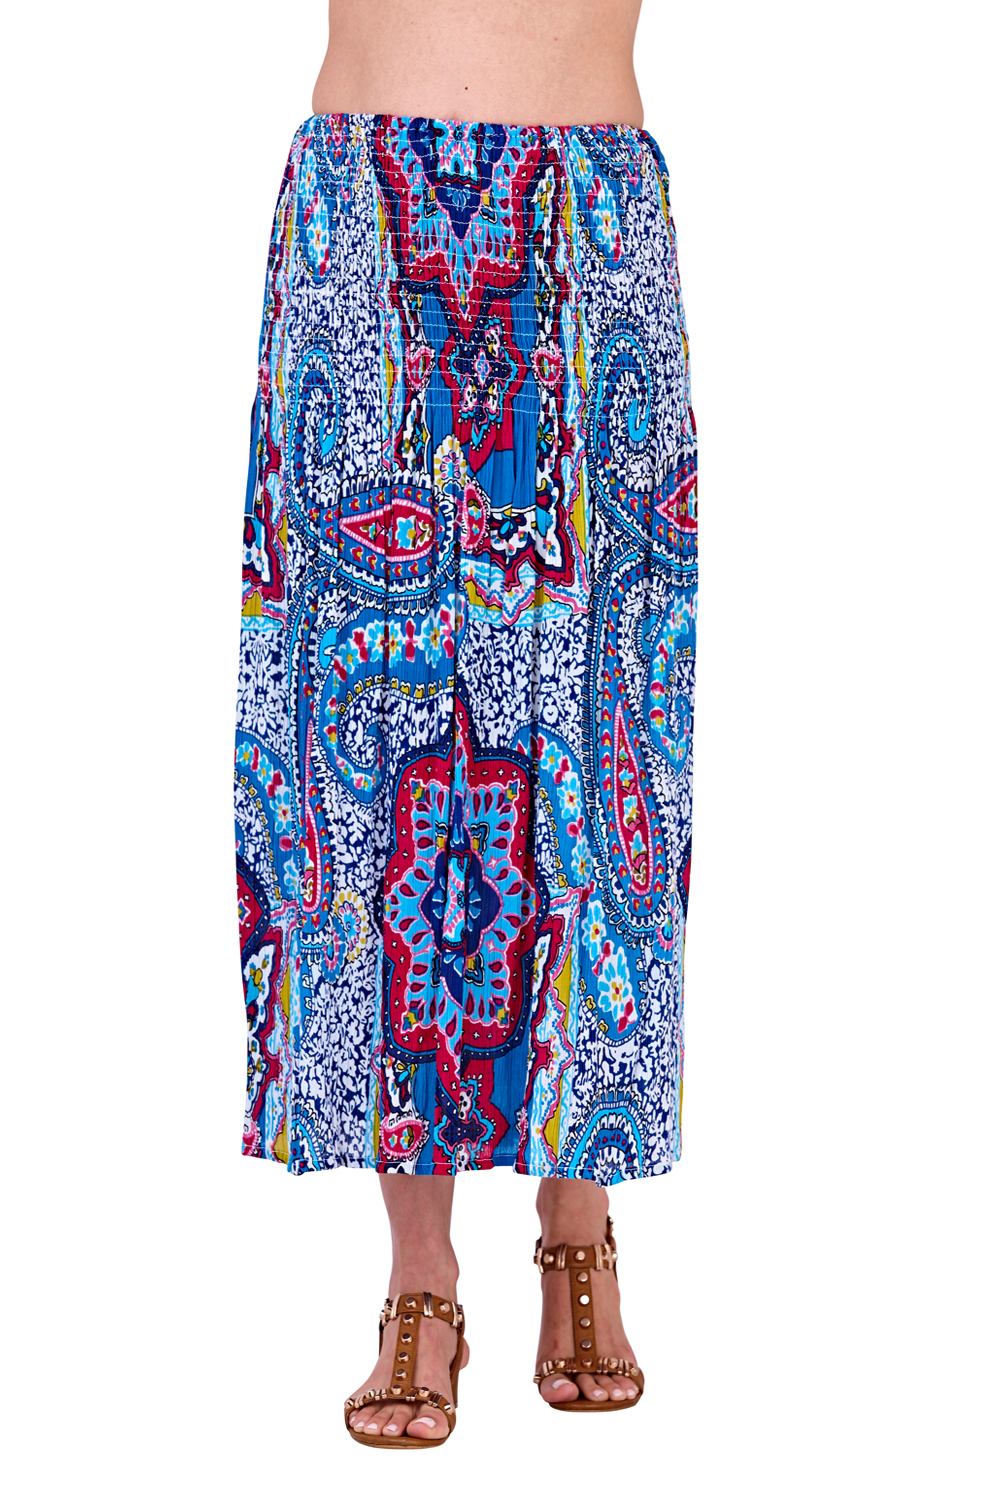 Pistachio-Womens-Patterned-3-In-1-Dresses-Ladies-New-Cotton-Summer-Beach-Skirts thumbnail 17